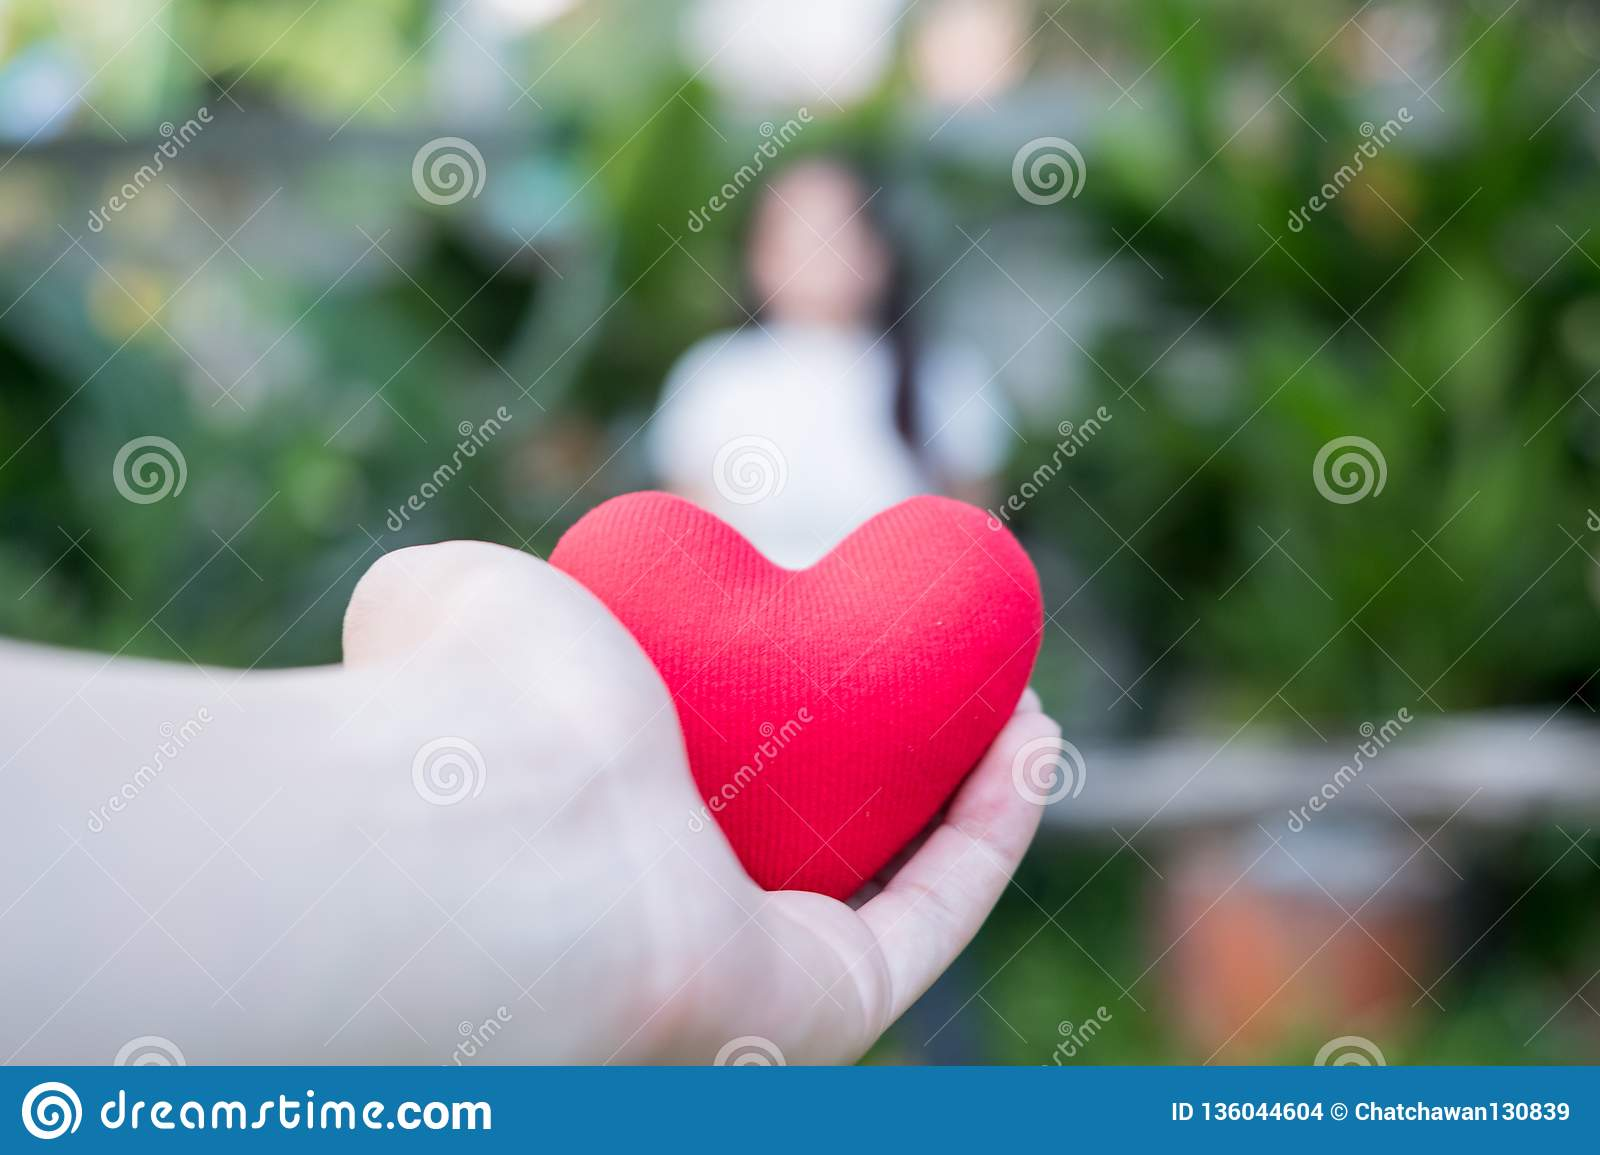 Hand are hold a red heart in the evening to replace the love in the Valentine.Give heart or love and concern to each other.Have